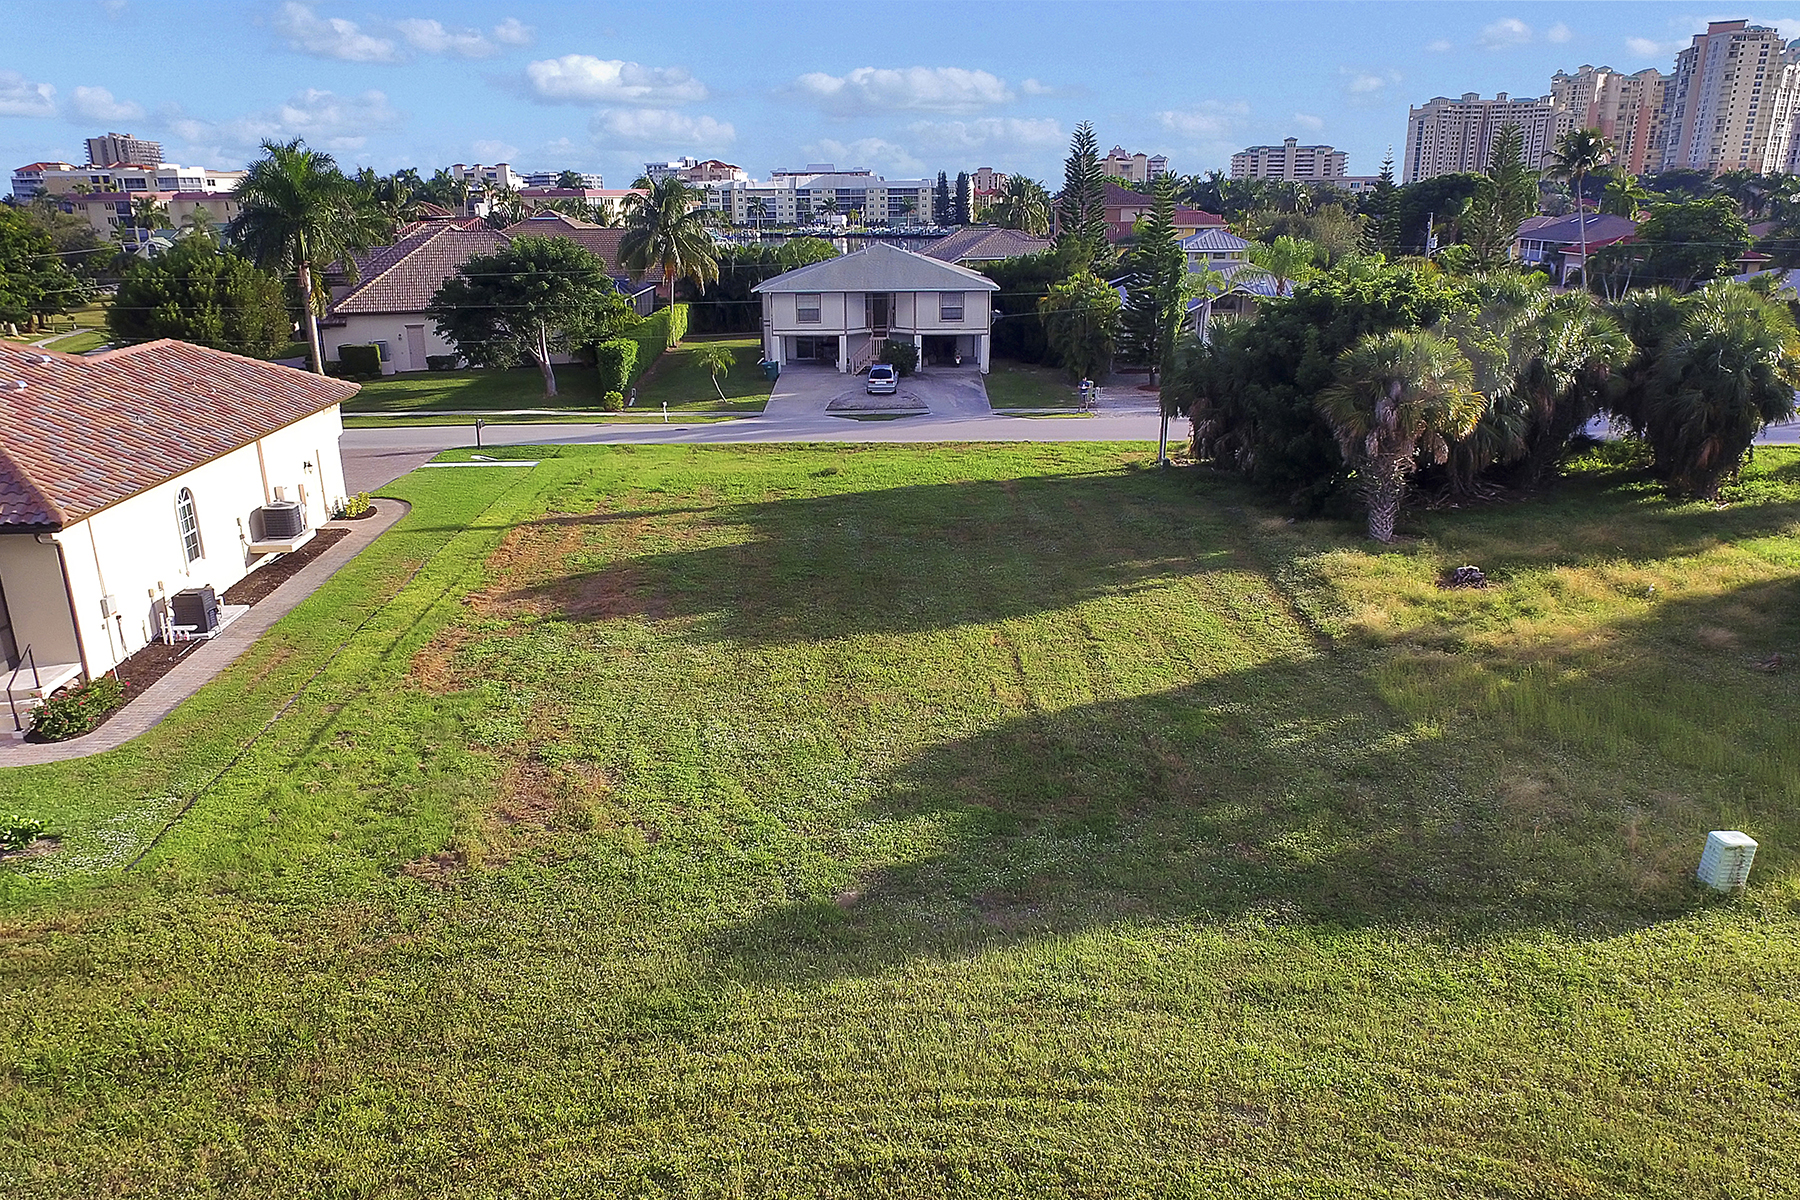 Land for Sale at MARCO ISLAND - AMBER DRIVE 824 Amber Dr Marco Island, Florida 34145 United States